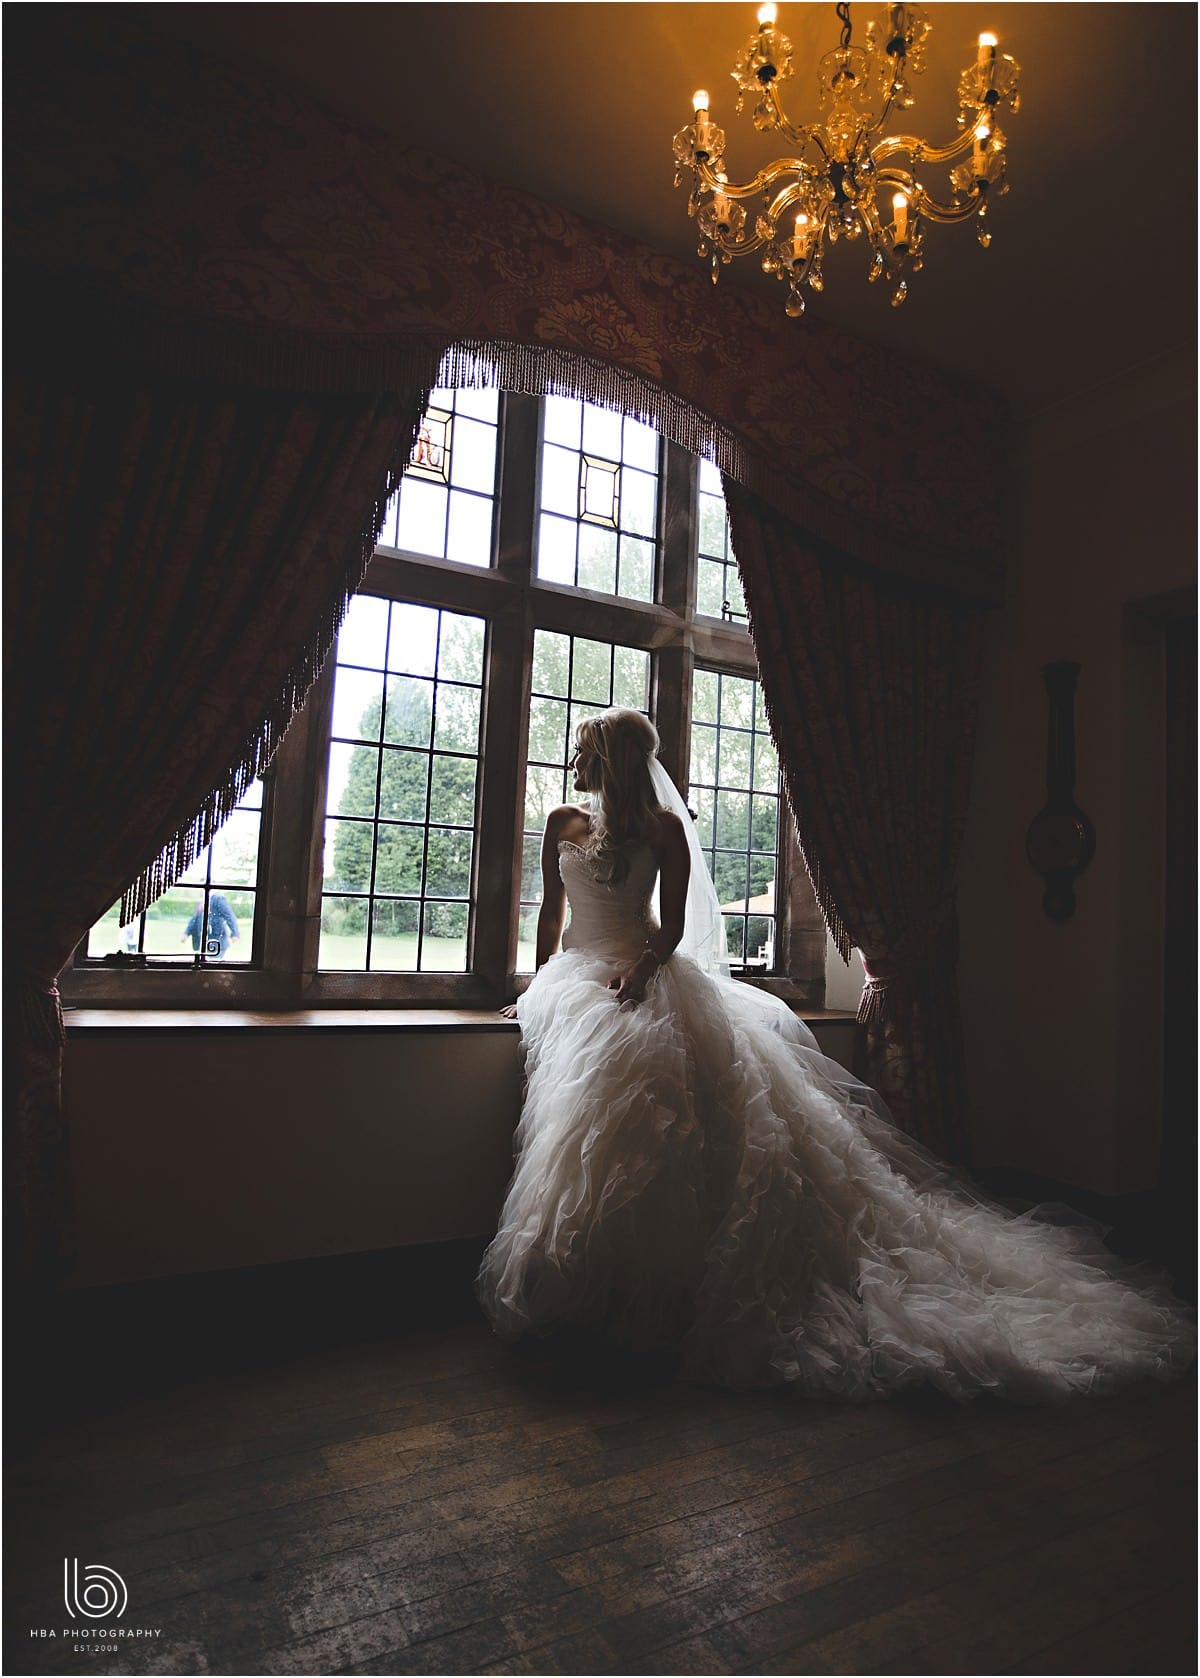 the bride looking out of the window